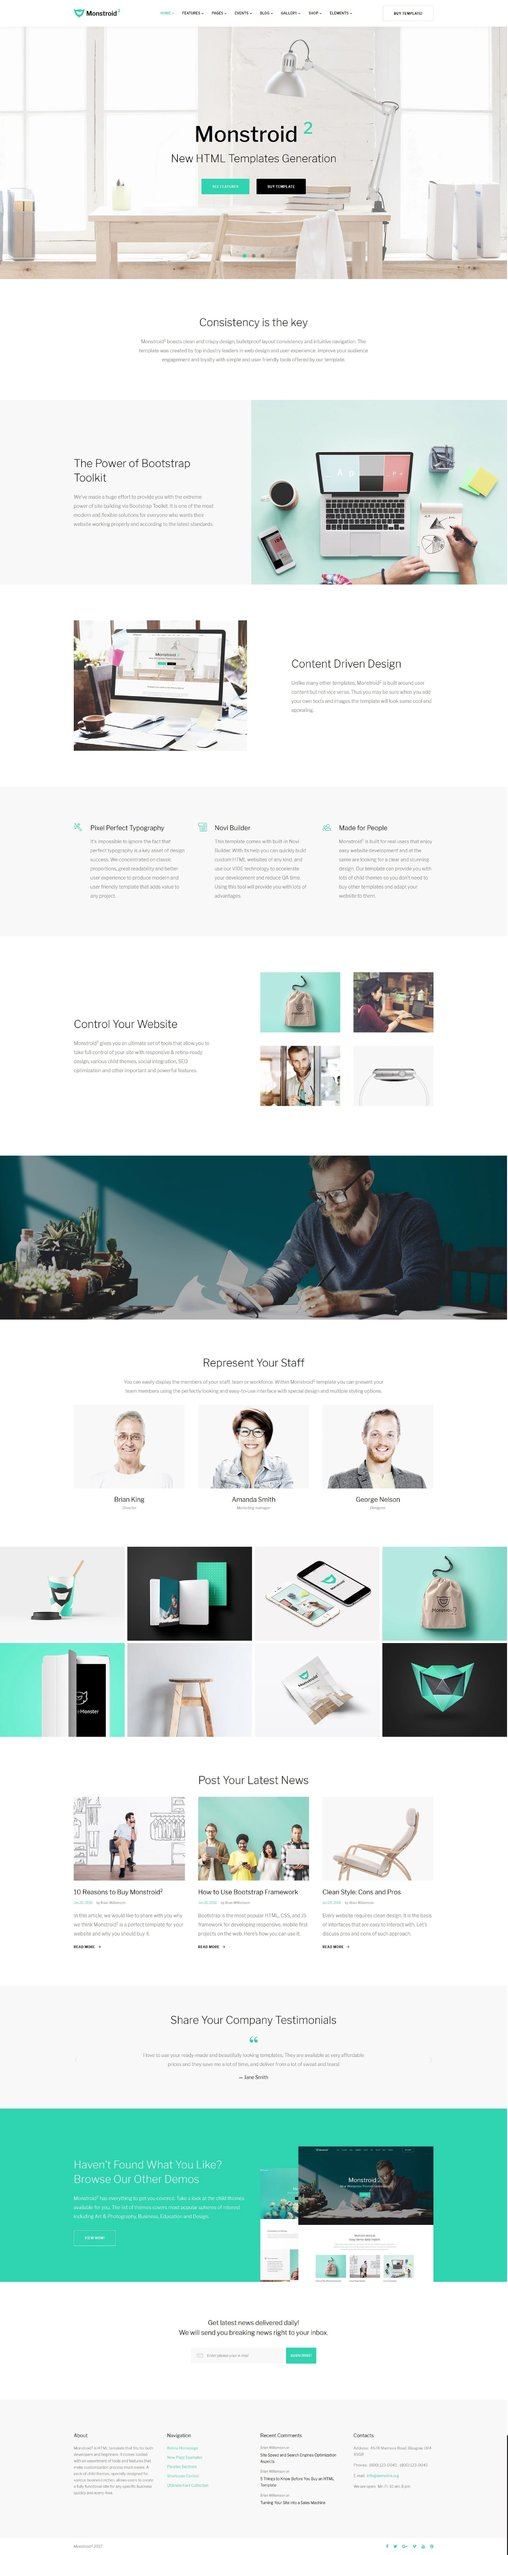 Monstroid2 Multipurpose Responsive Website Theme